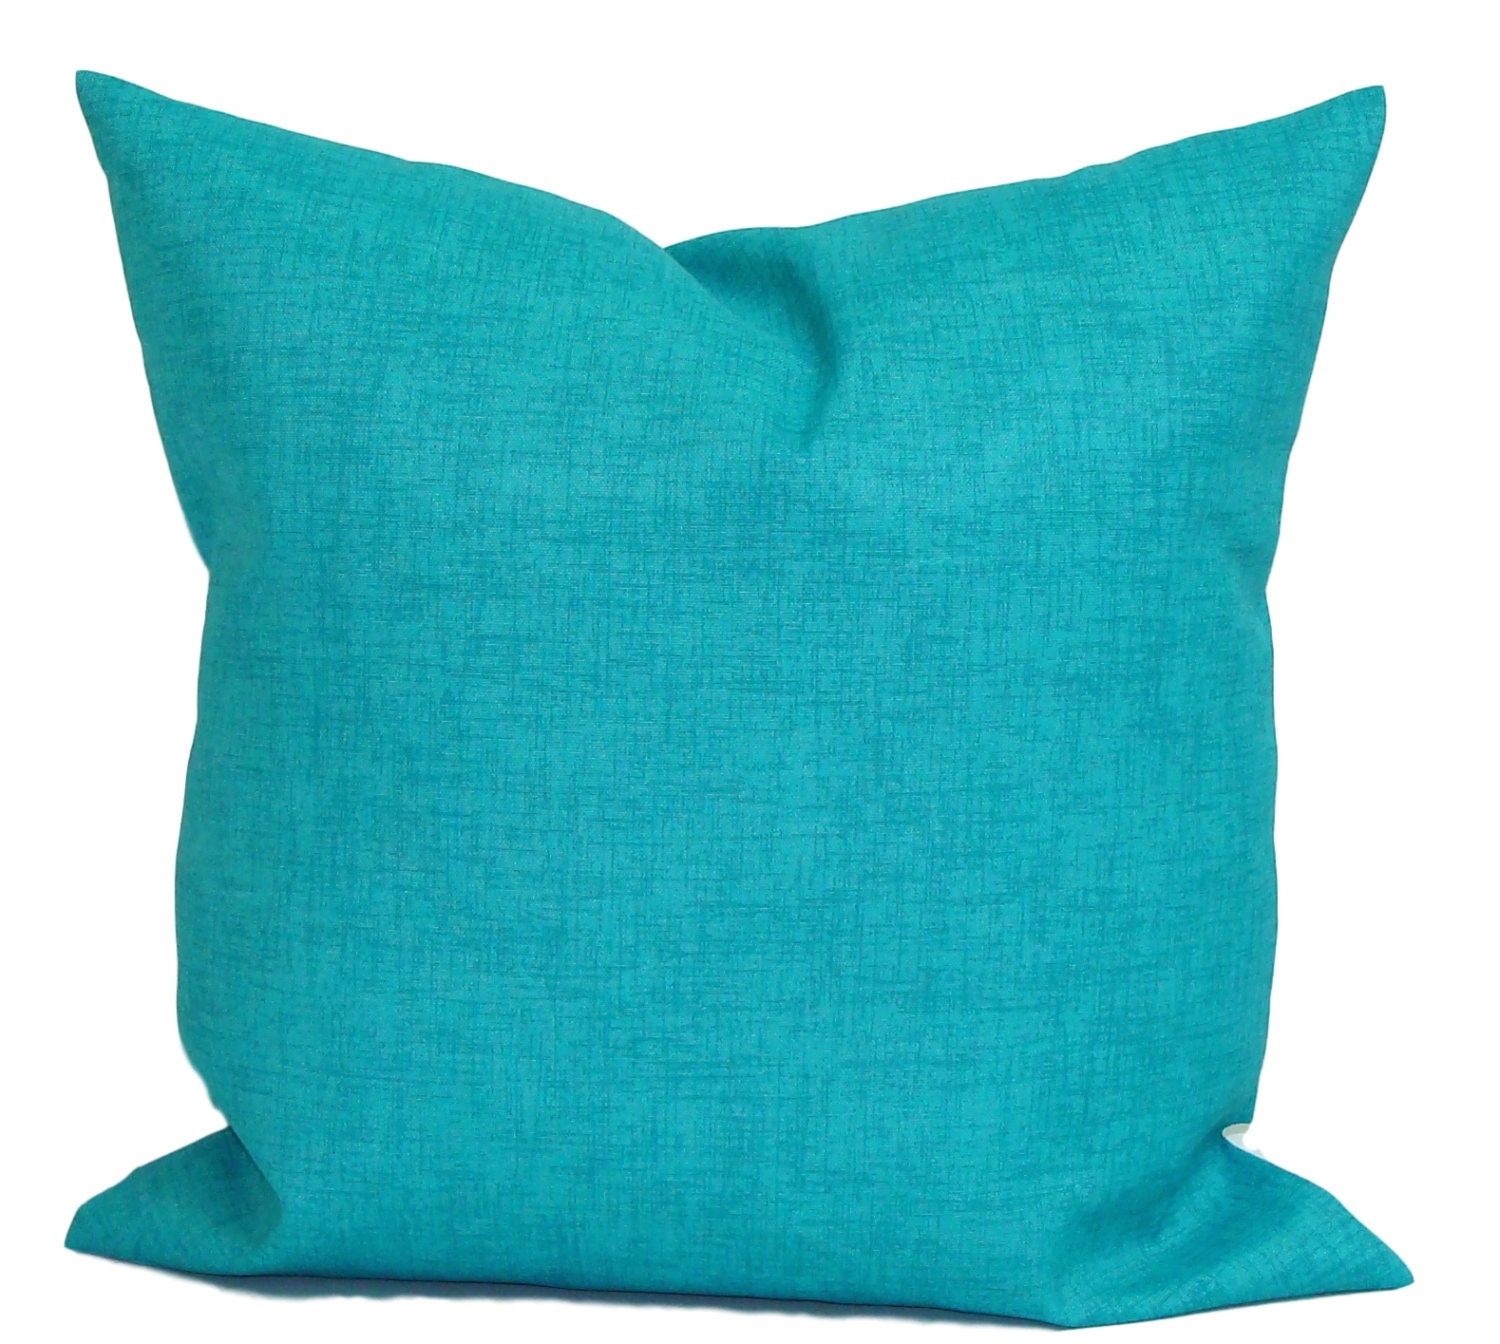 BLUE OUTDOOR PILLOWS Solid Blue Pillow Cover Decorative